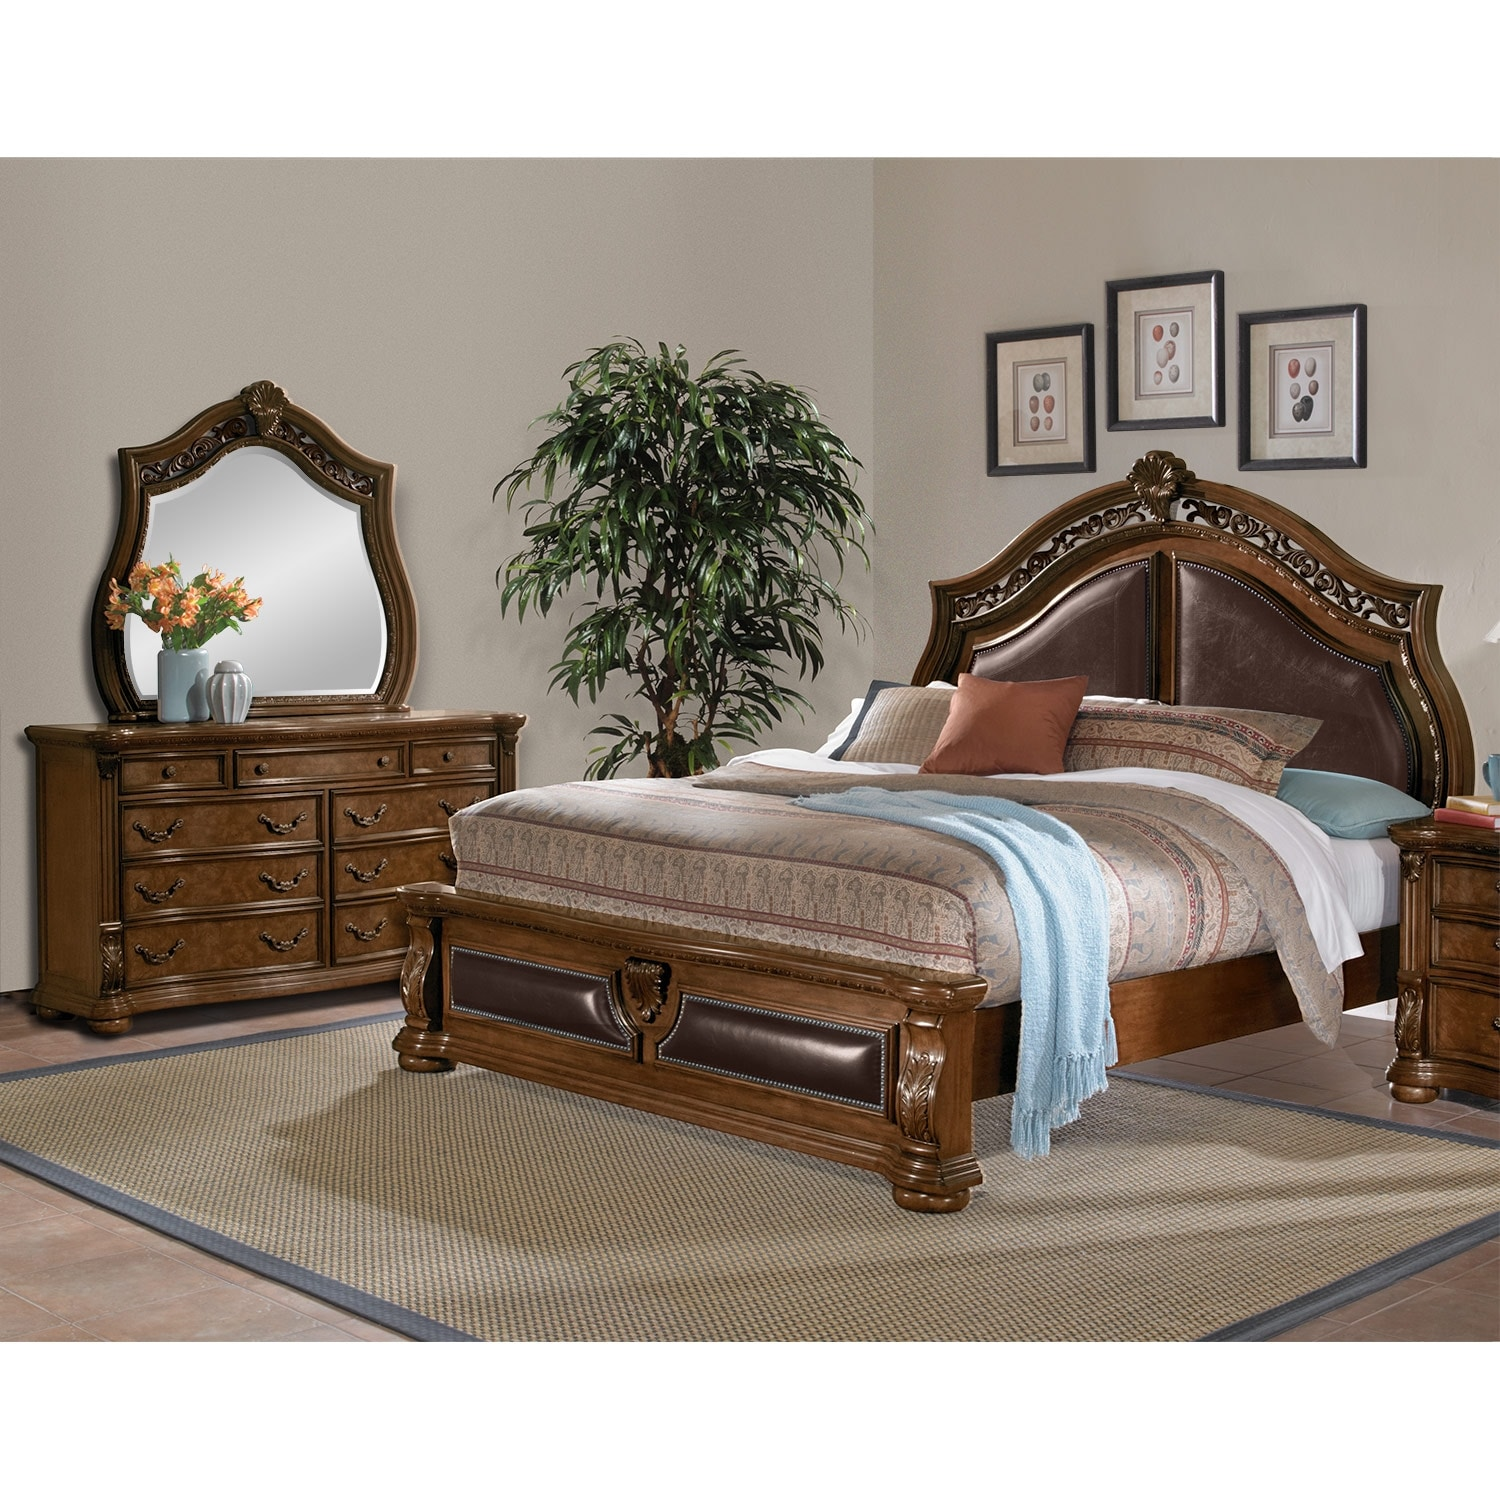 Morocco 5-Piece King Bedroom Set - Pecan